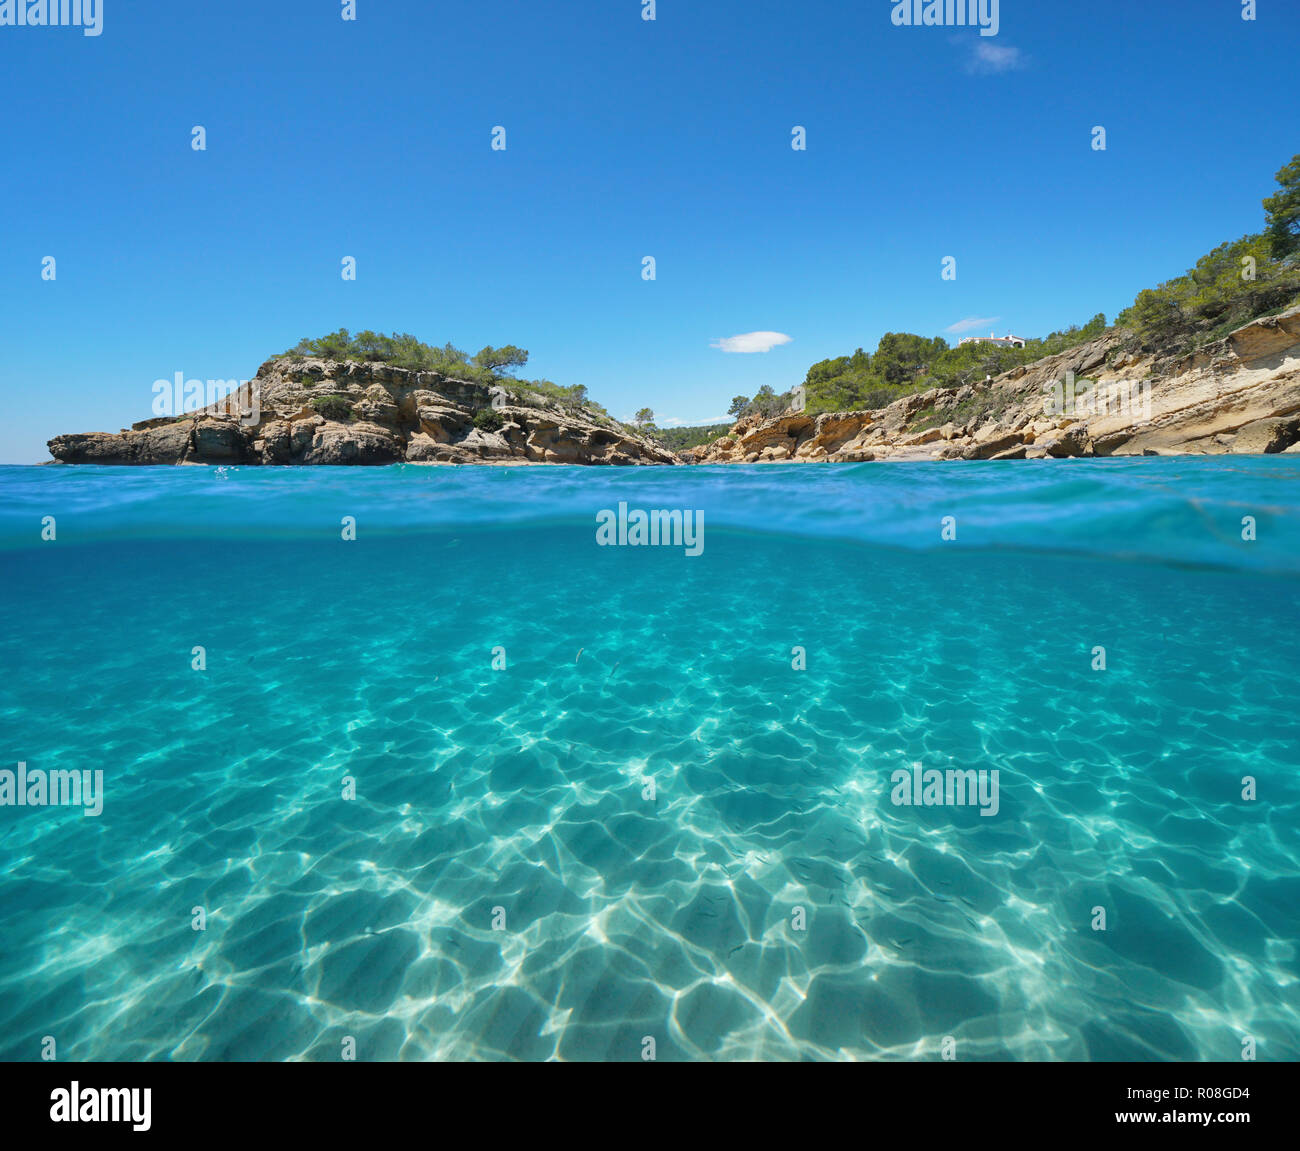 Rocky coast with an islet and sand underwater, split view half above and below water surface, Mediterranean sea, l'Illot, L'Ametlla de Mar, Spain - Stock Image